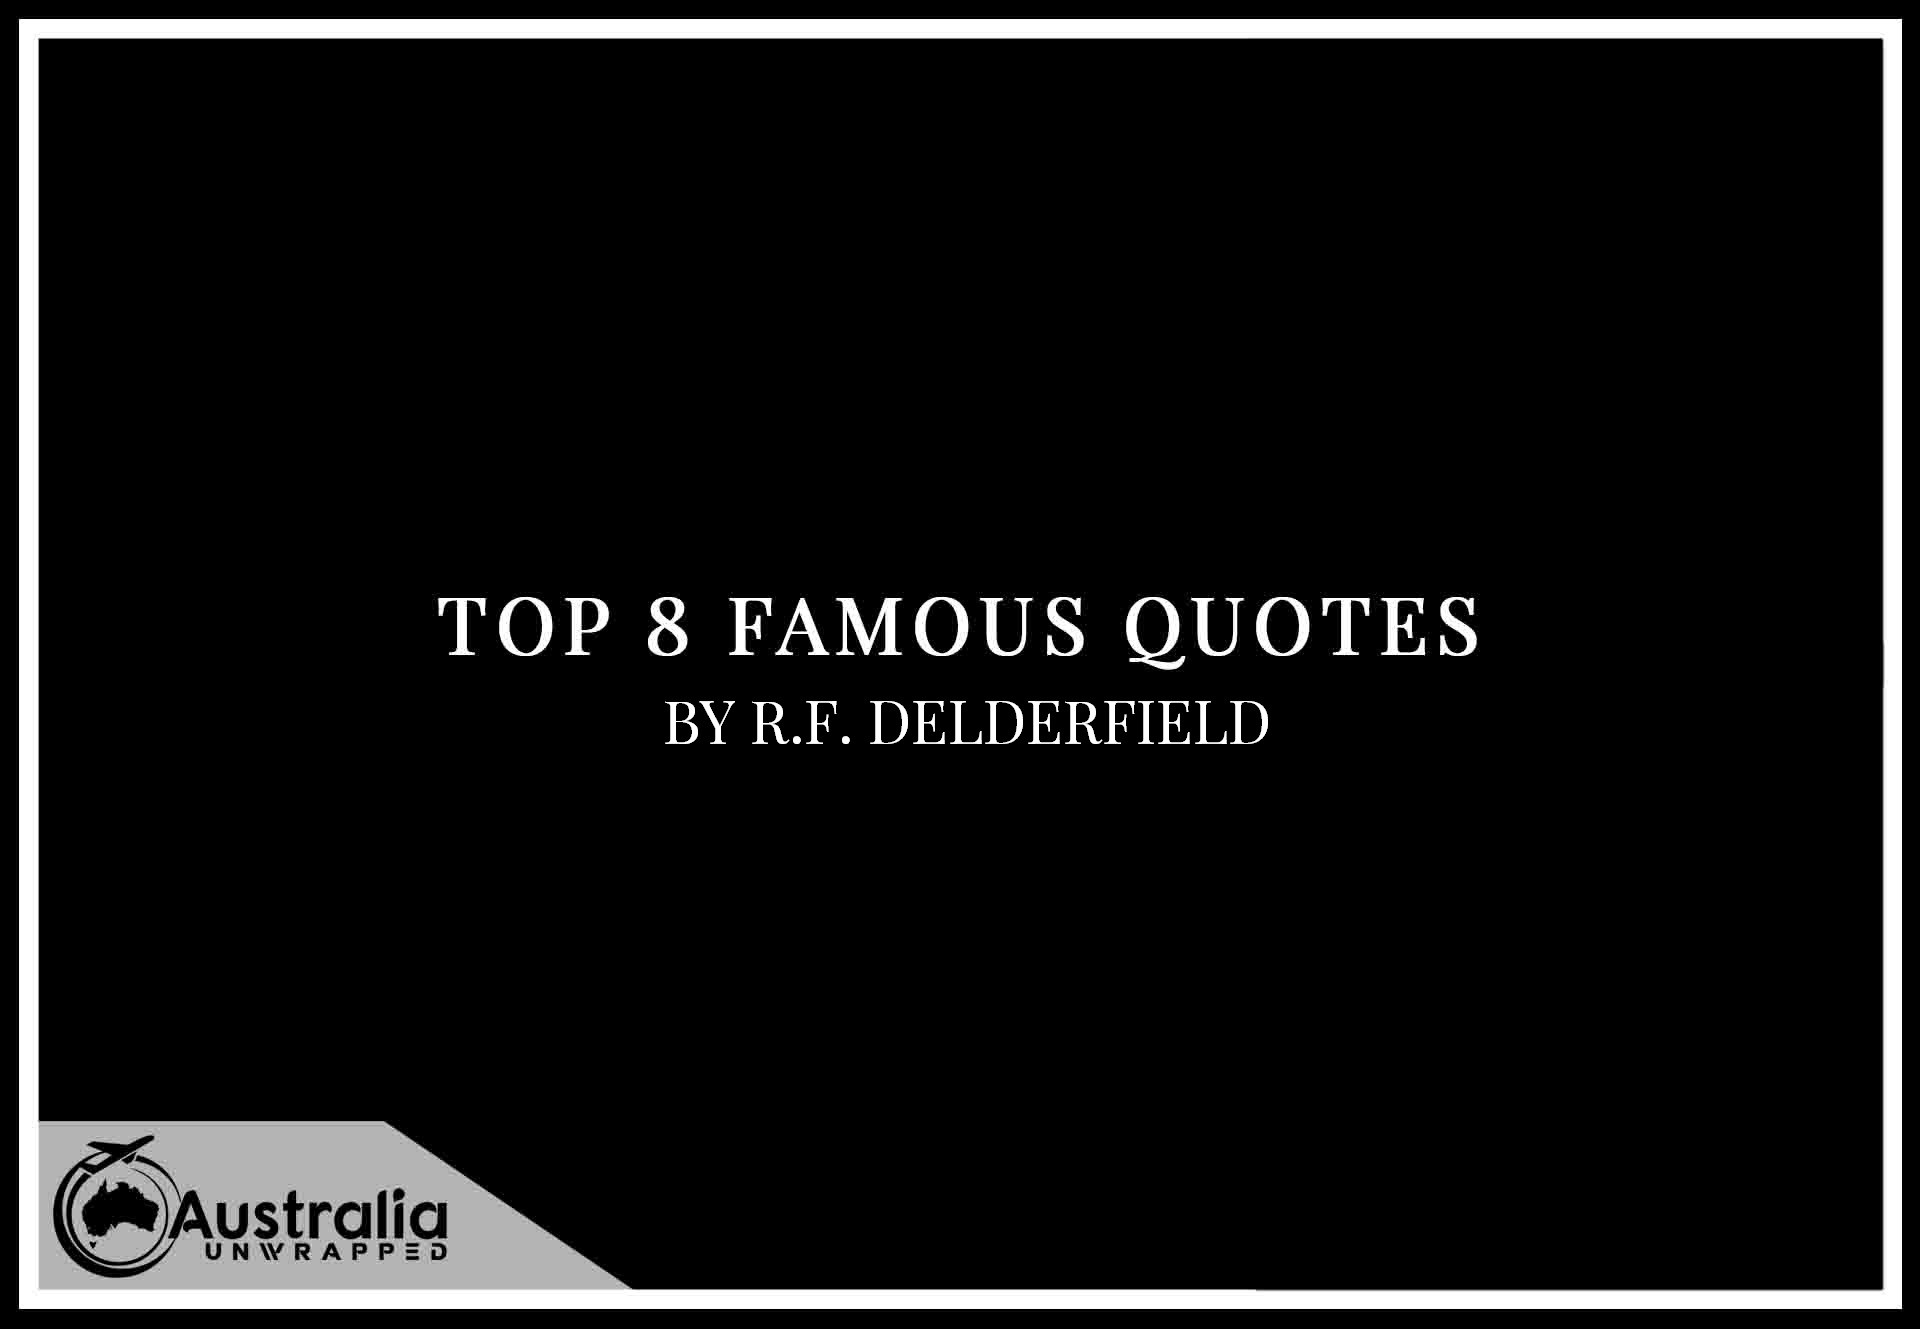 Top 8 Famous Quotes by Author R.F. Delderfield